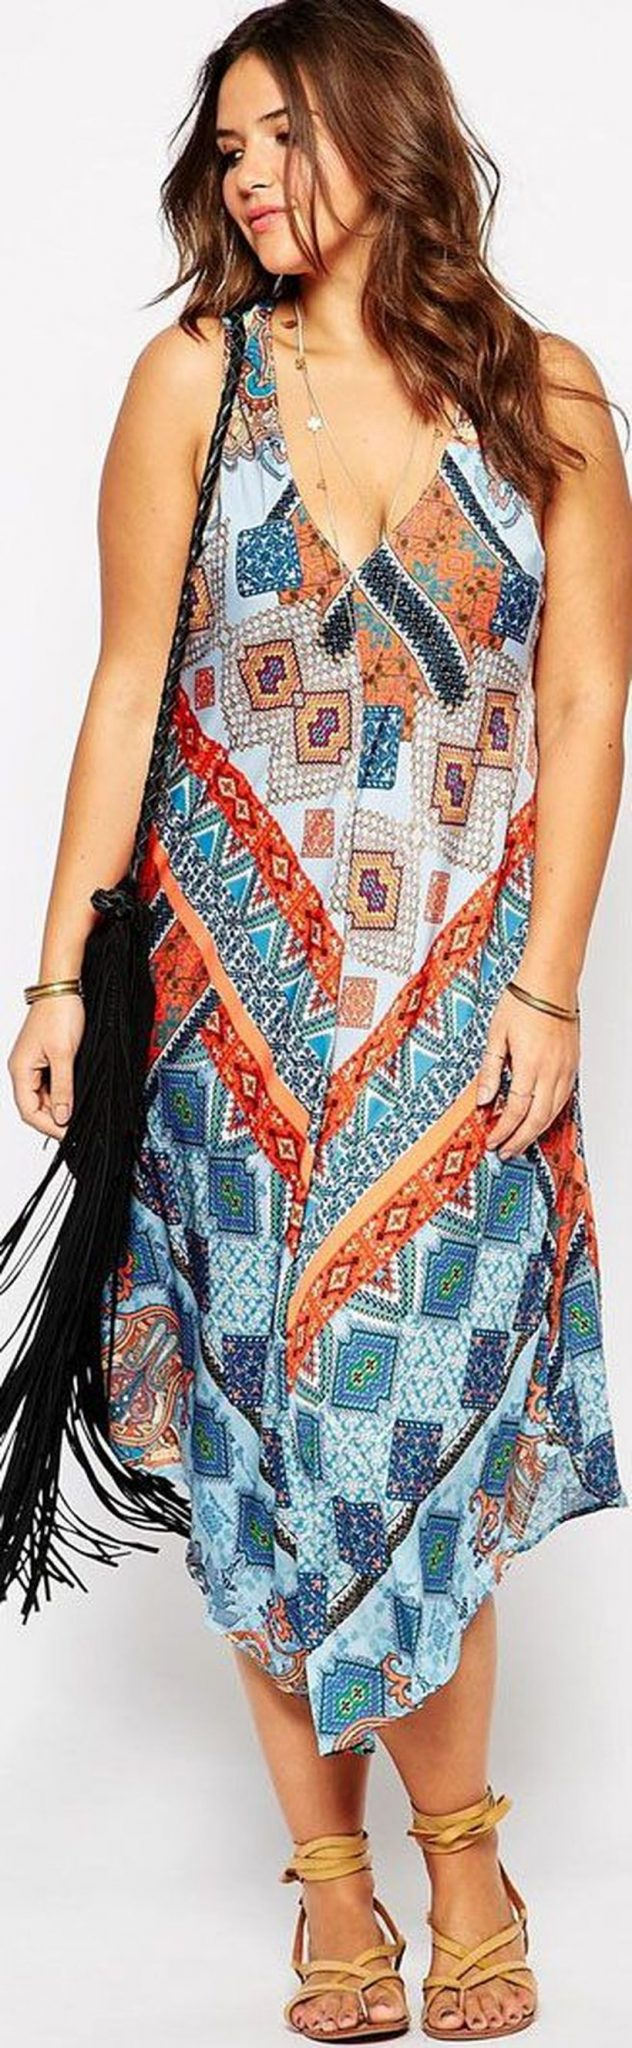 Plus size boho outfit style 23